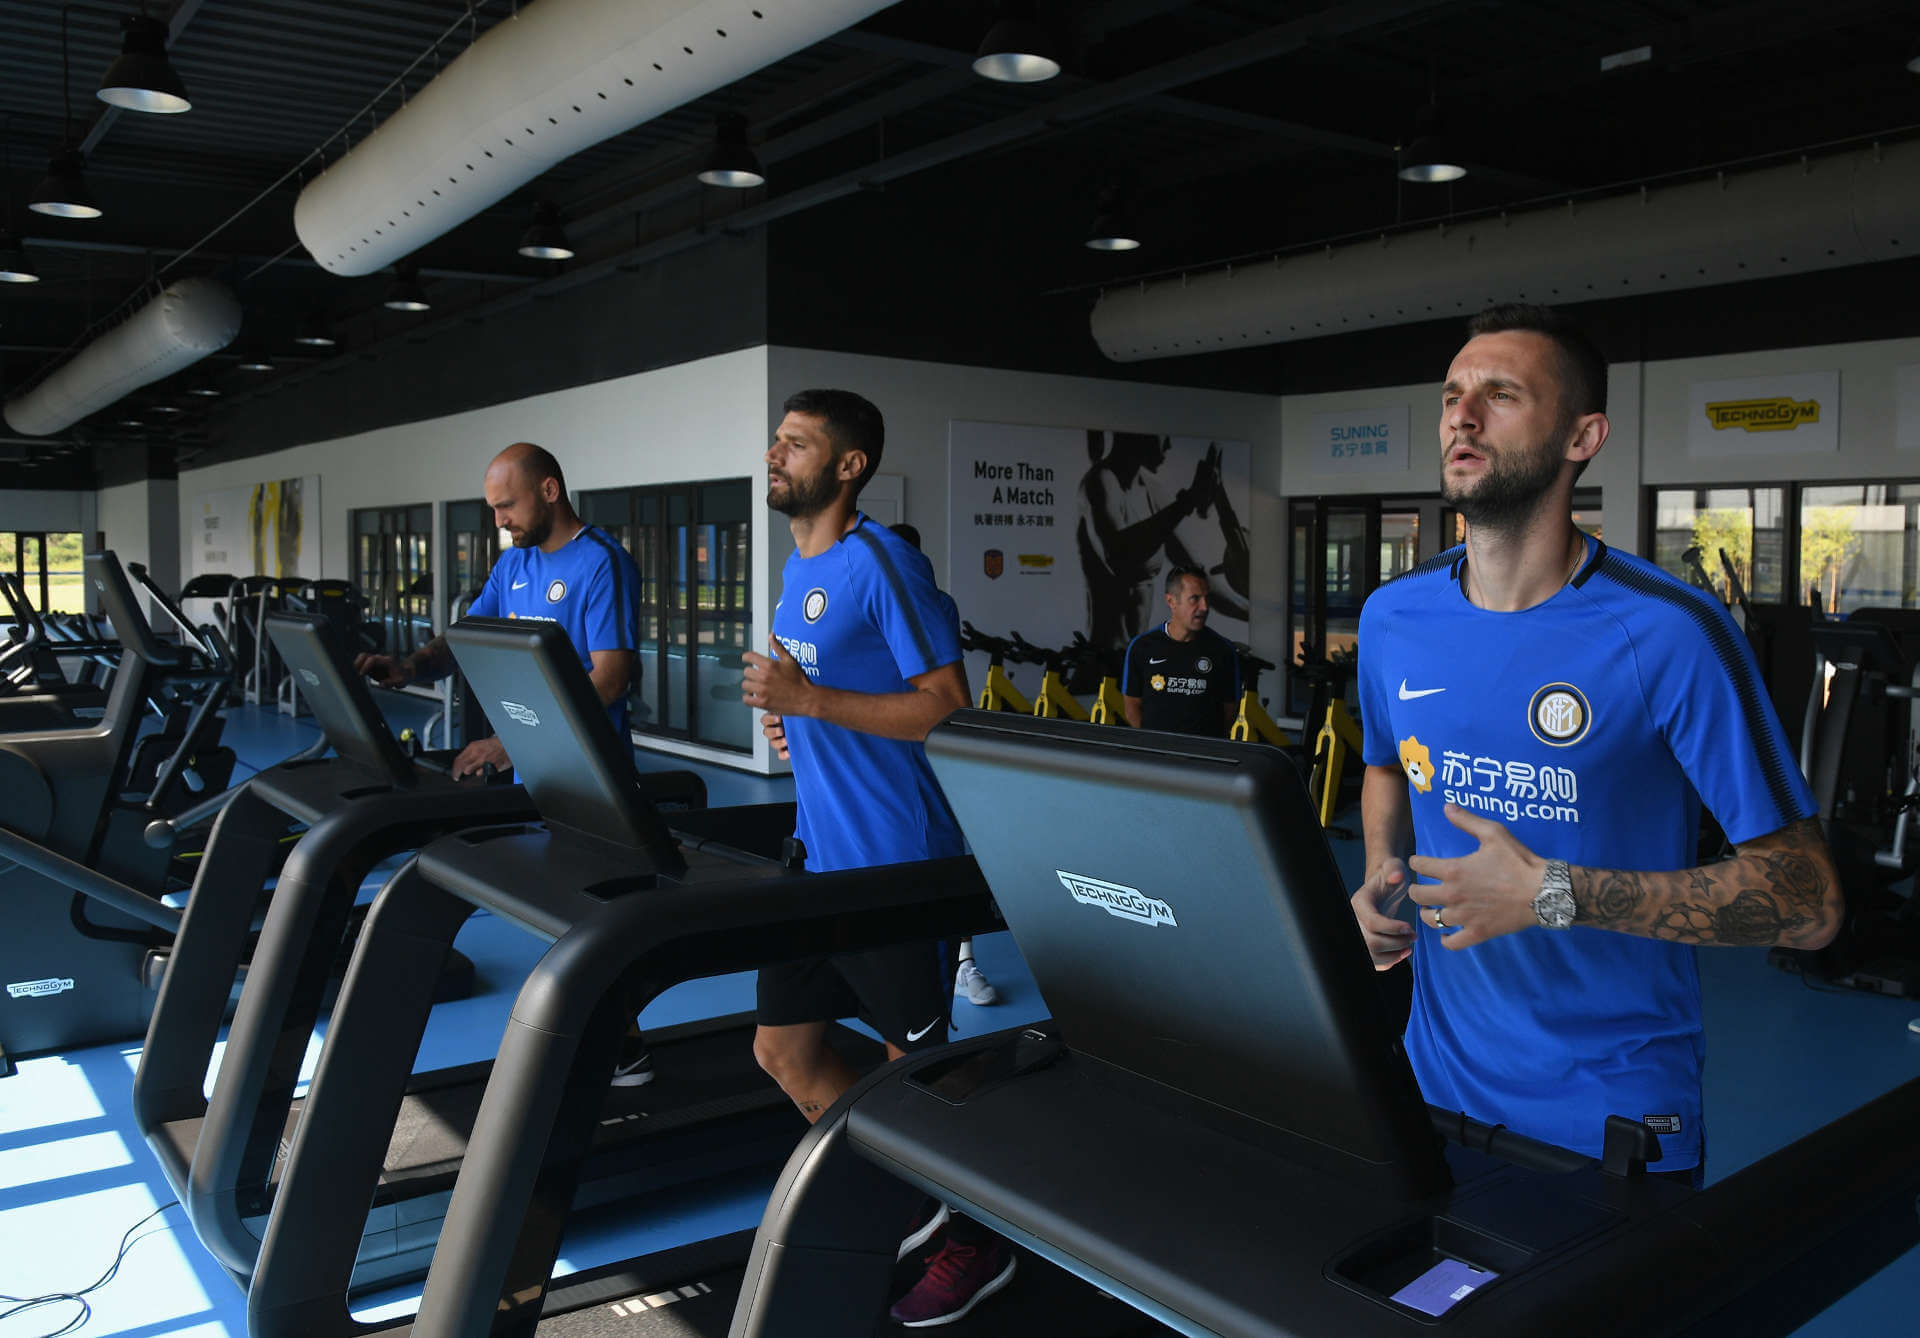 TECHNOGYM and INTER FC: 20 years of partnership from Italy to Nanjing